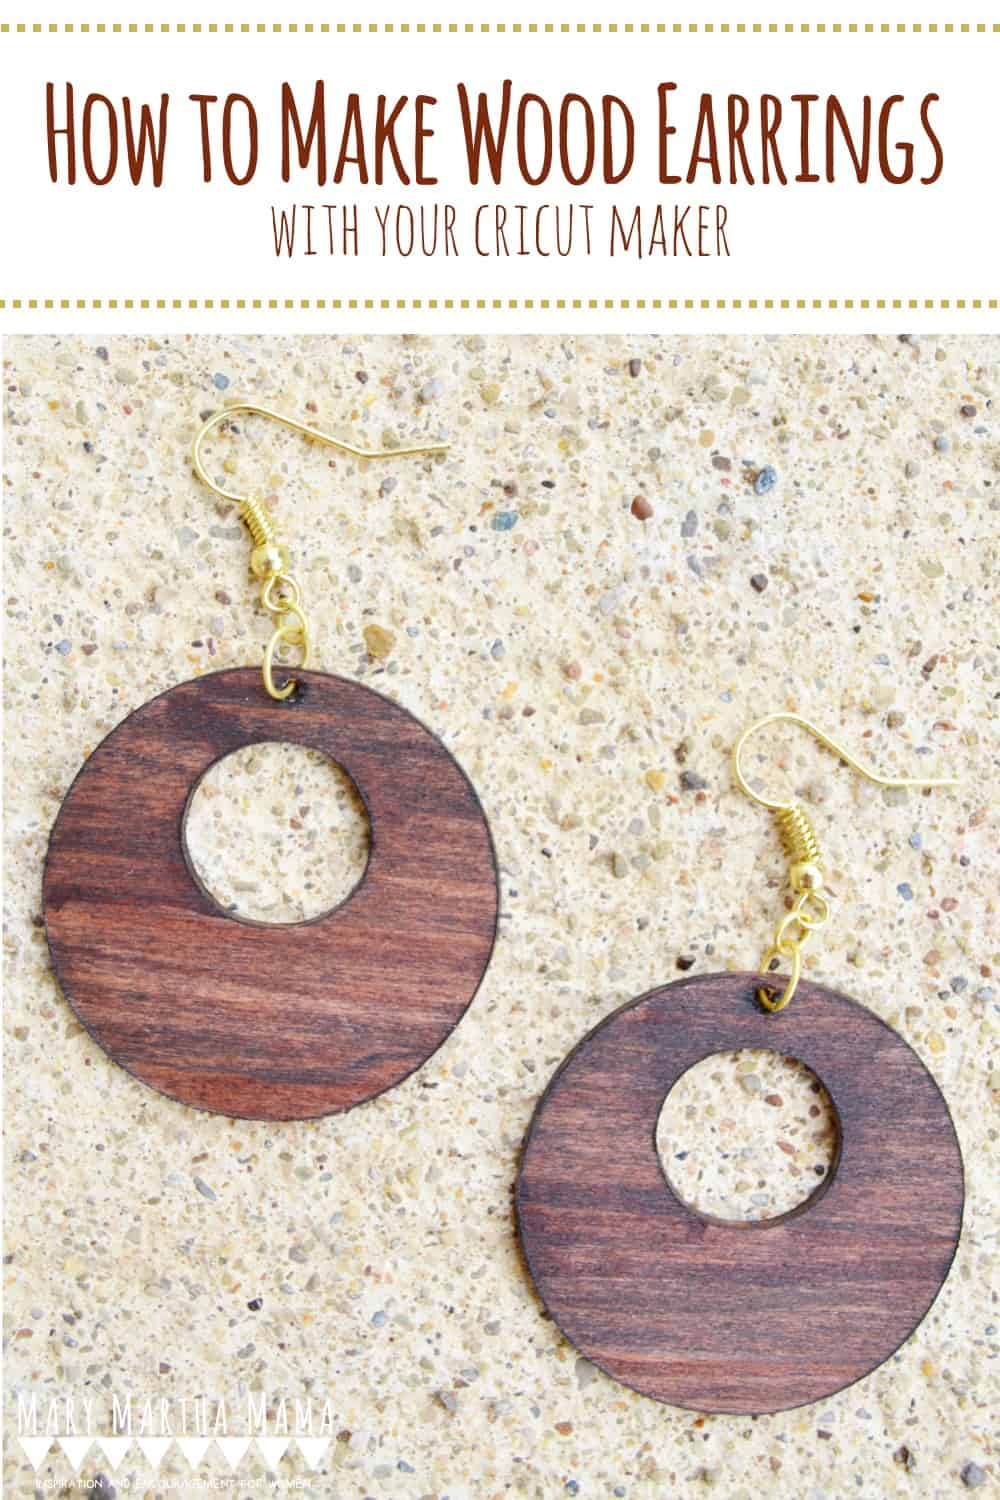 Cricut Earrings Tutorial- Follow this tutorial to make the earrings from basswood using your Cricut Maker. #cricutearrings #cricutmaker #cricutprojects #woodenearrings